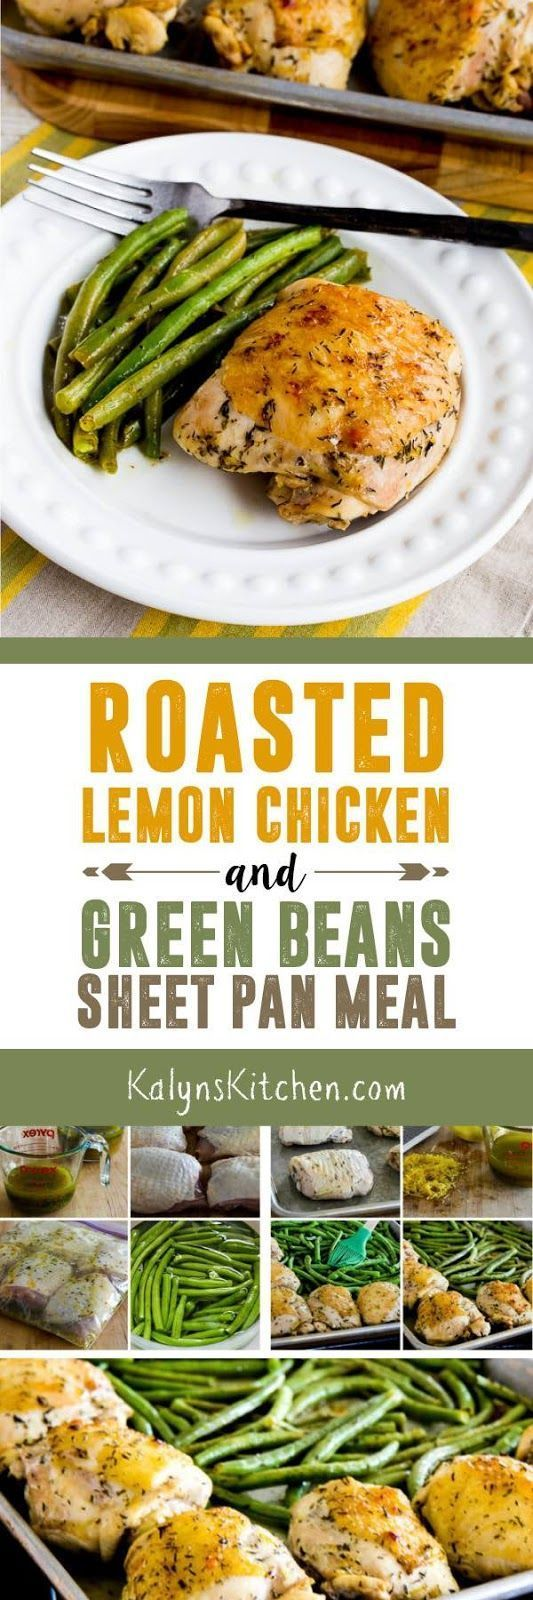 This Roasted Lemon Chicken and Green Beans Sheet Pan Meal is easy and delicious and this dinner is low-carb, Paleo, Whole 30, gluten-free, and South Beach Diet Phase One!  [found on KalynsKitchen.com]